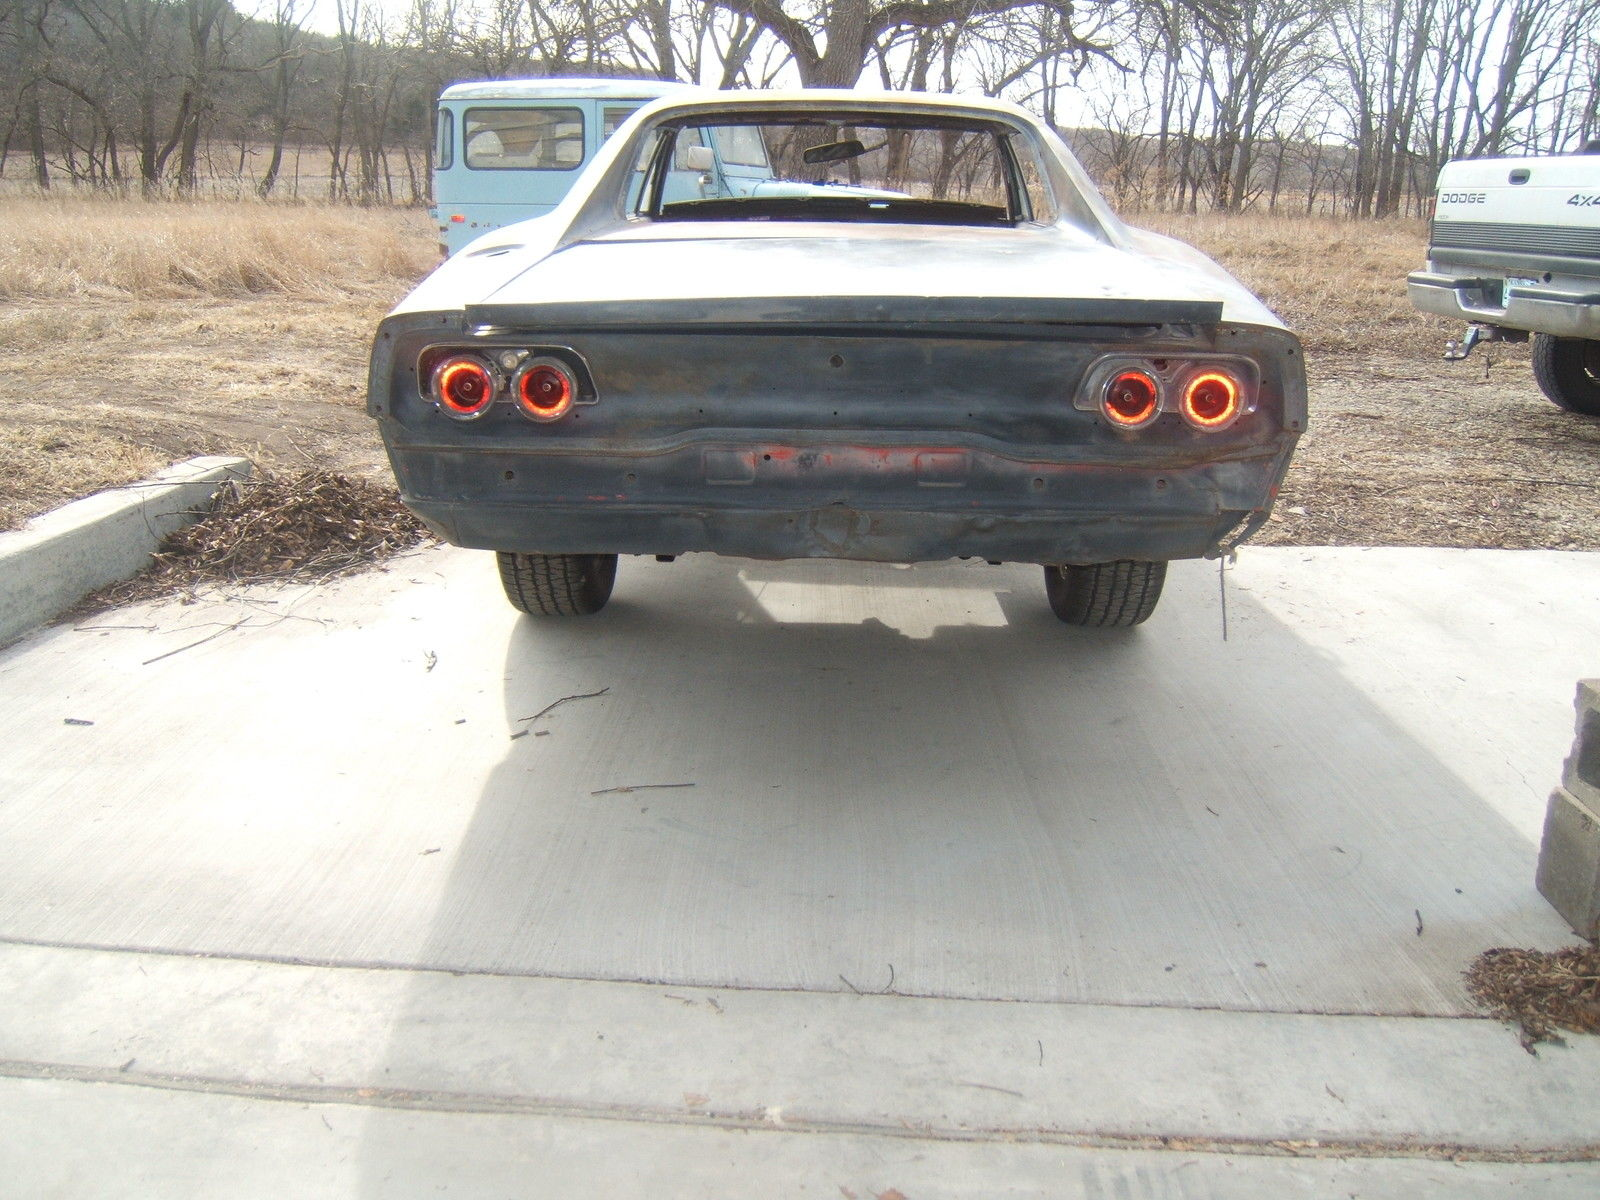 1968 Dodge Charger Project Not Rt 1969 Or 1970 Mopar Car Plymouth For Sale In Manhattan Kansas United States